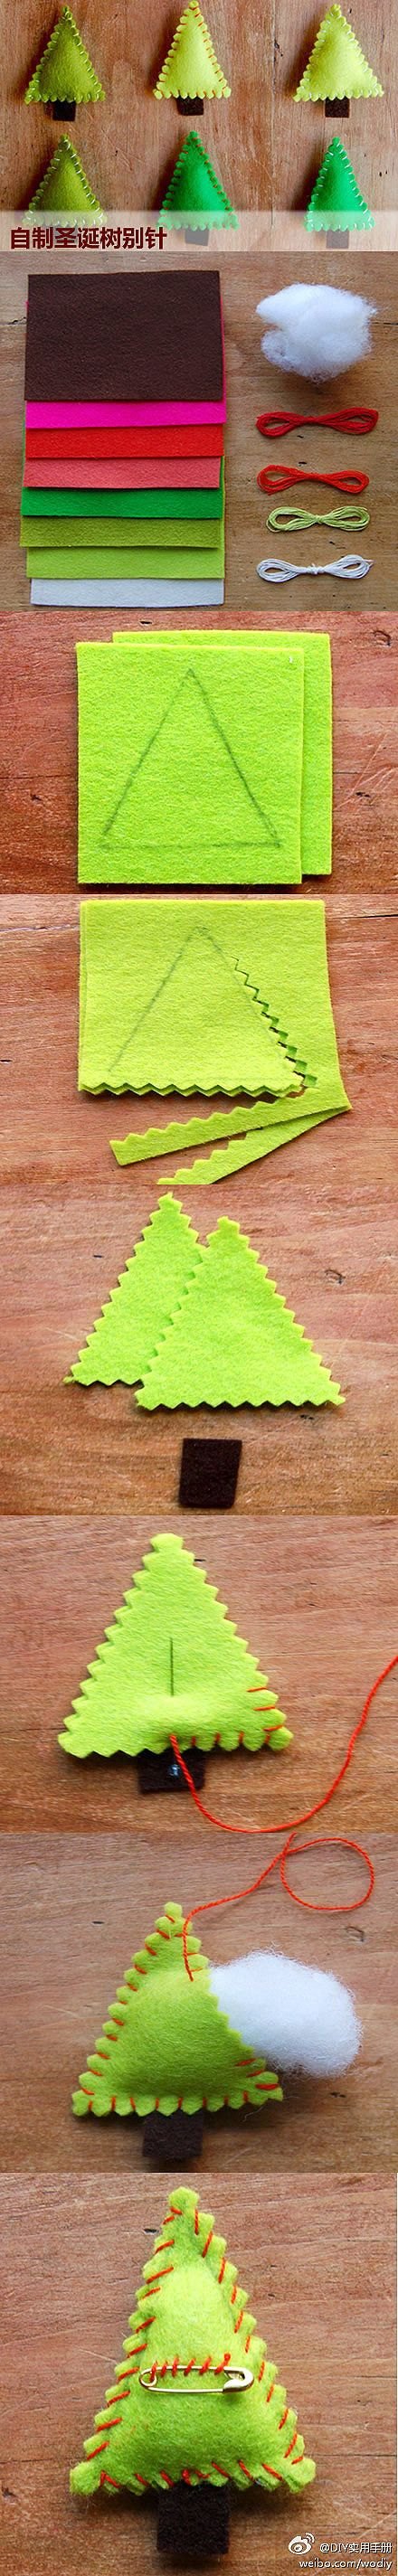 How to make cute Christmas tree clothpin step by step DIY tutorial instructions / How To Instructions on imgfave